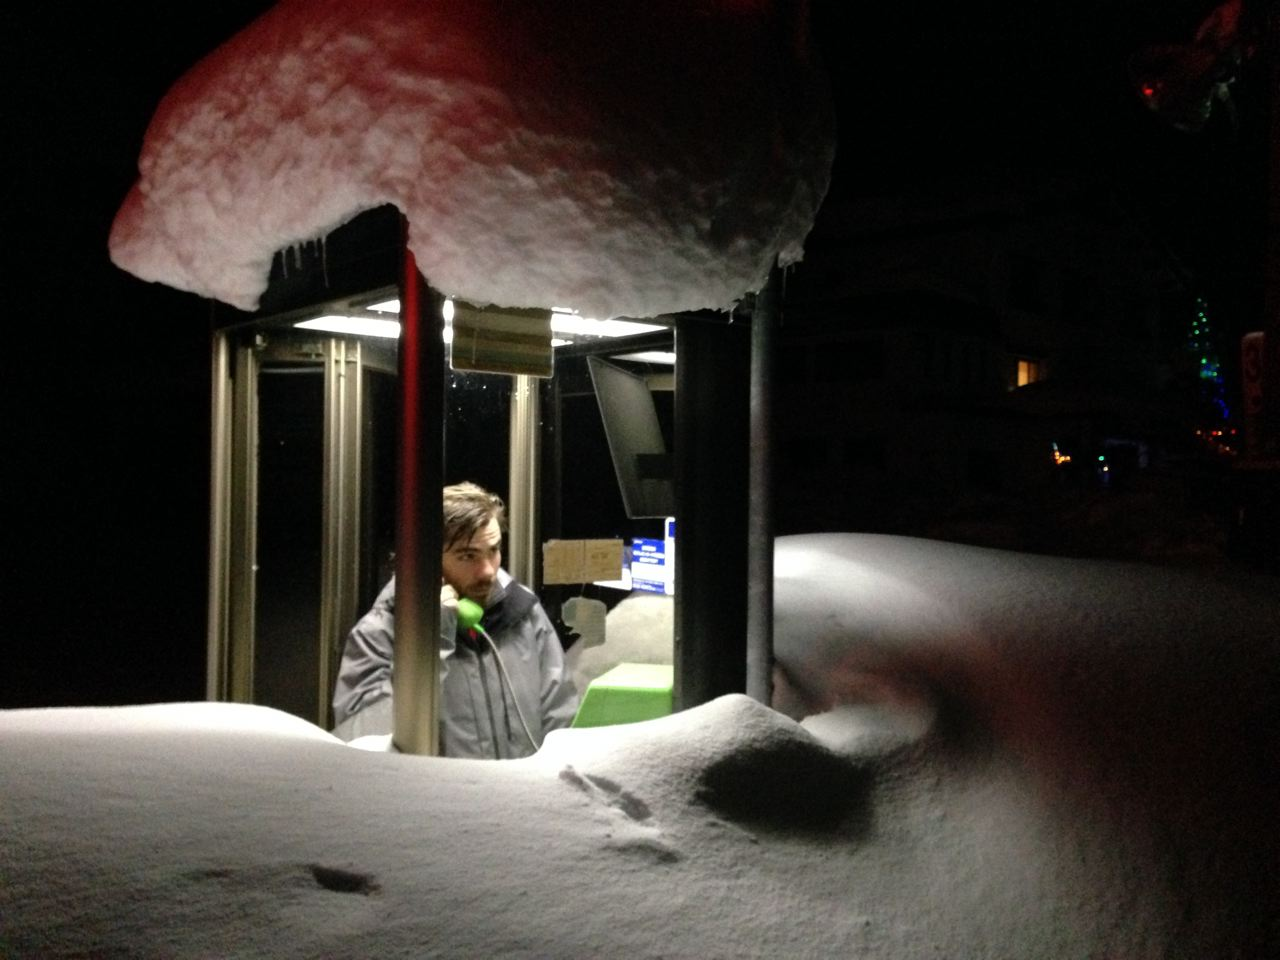 The Public Phone in Nozawa may as well be covered with snow! Get a SIM card and check your Face book update on the Lift!